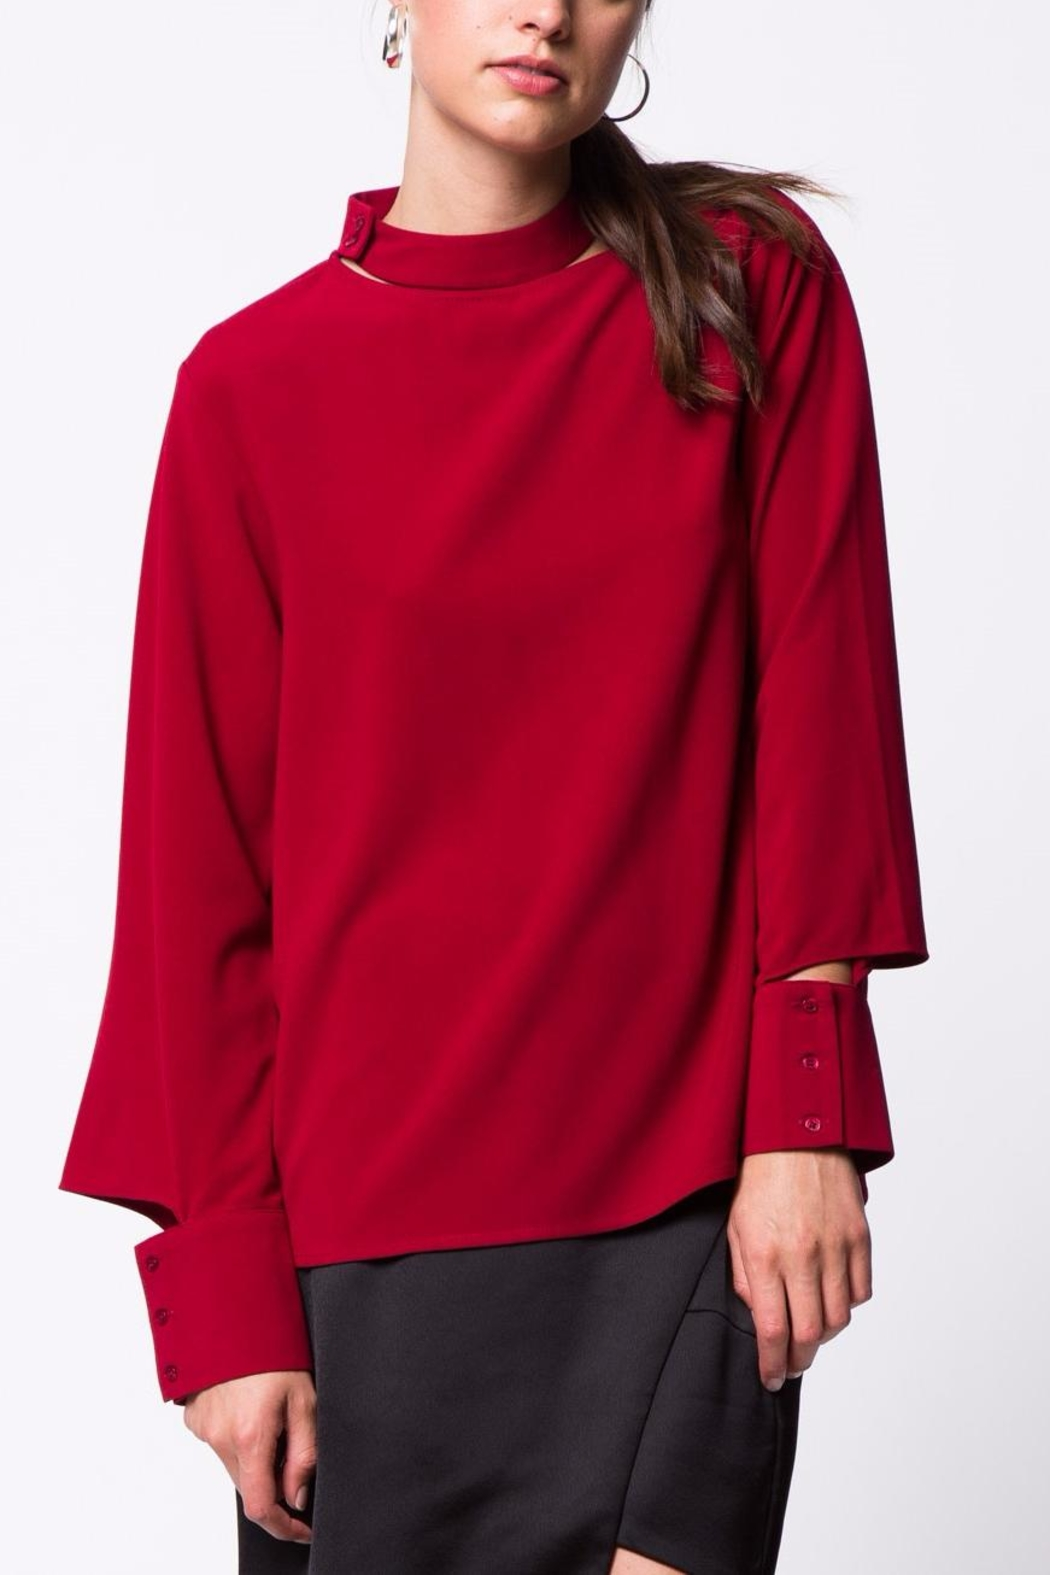 LoveRiche Wine Cut-Out Blouse - Main Image